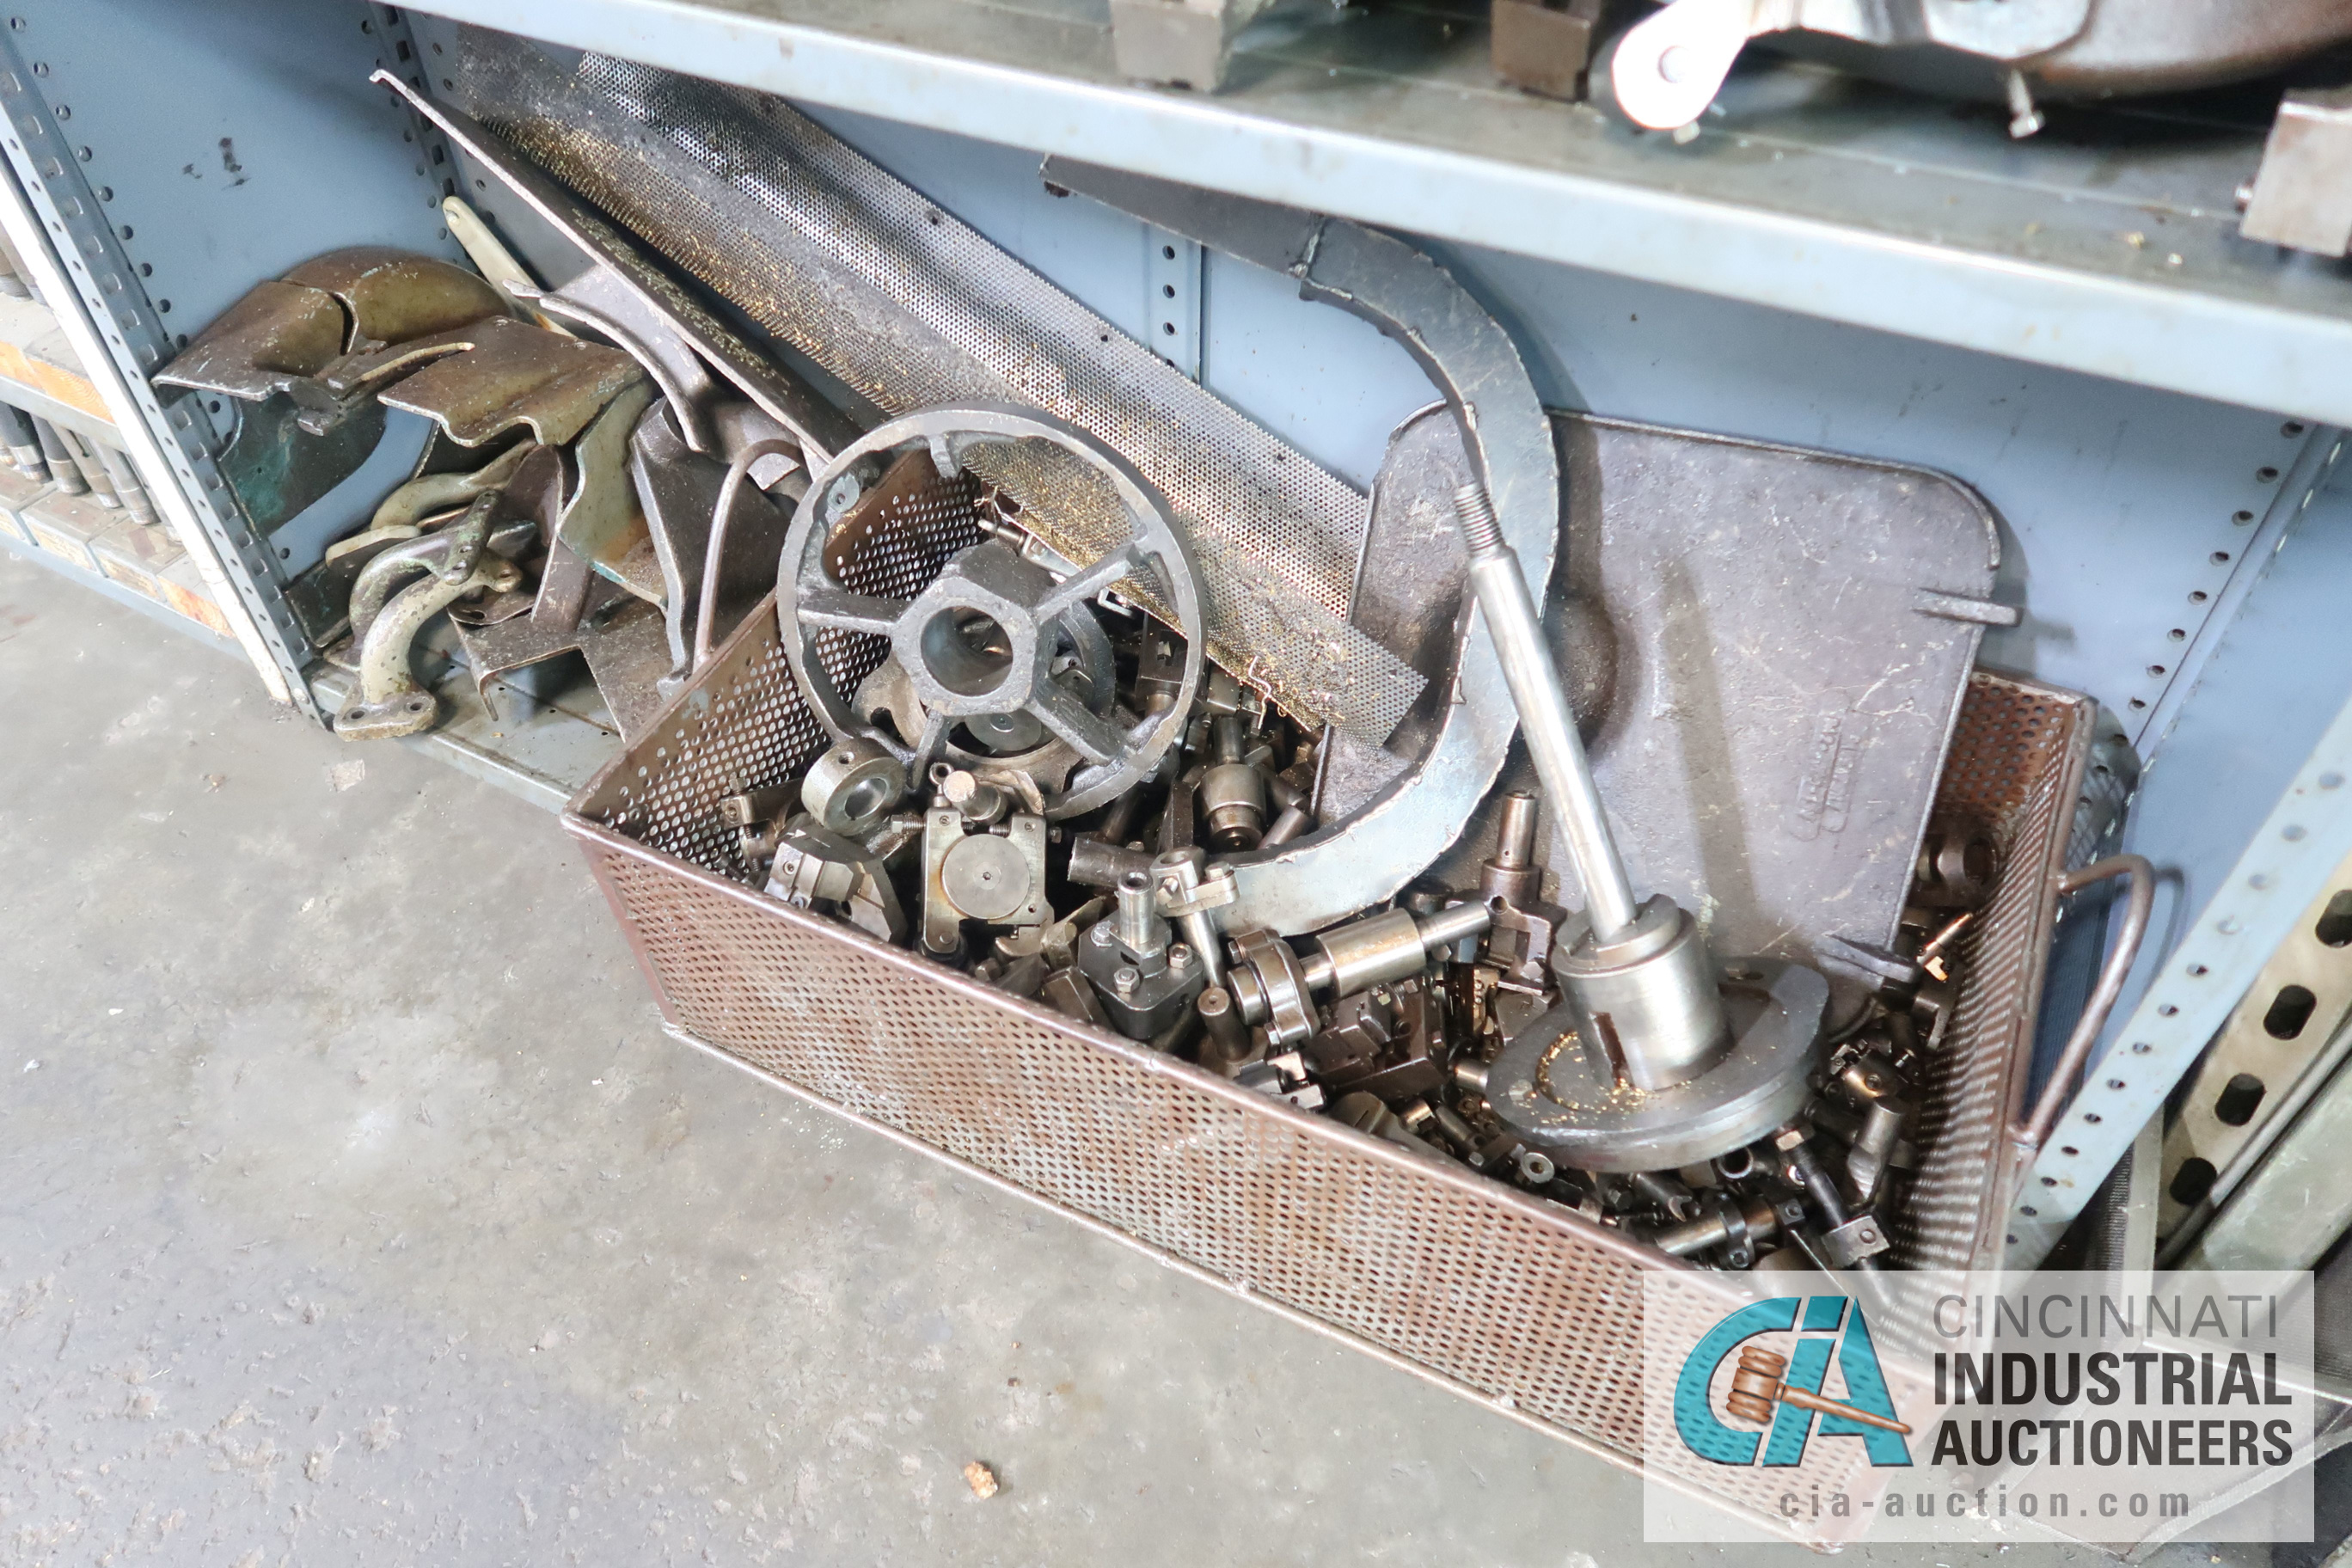 (LOT) MISCELLANEOUS DAVENPORT ATTACHMENTS AND TOOLING - Image 5 of 5